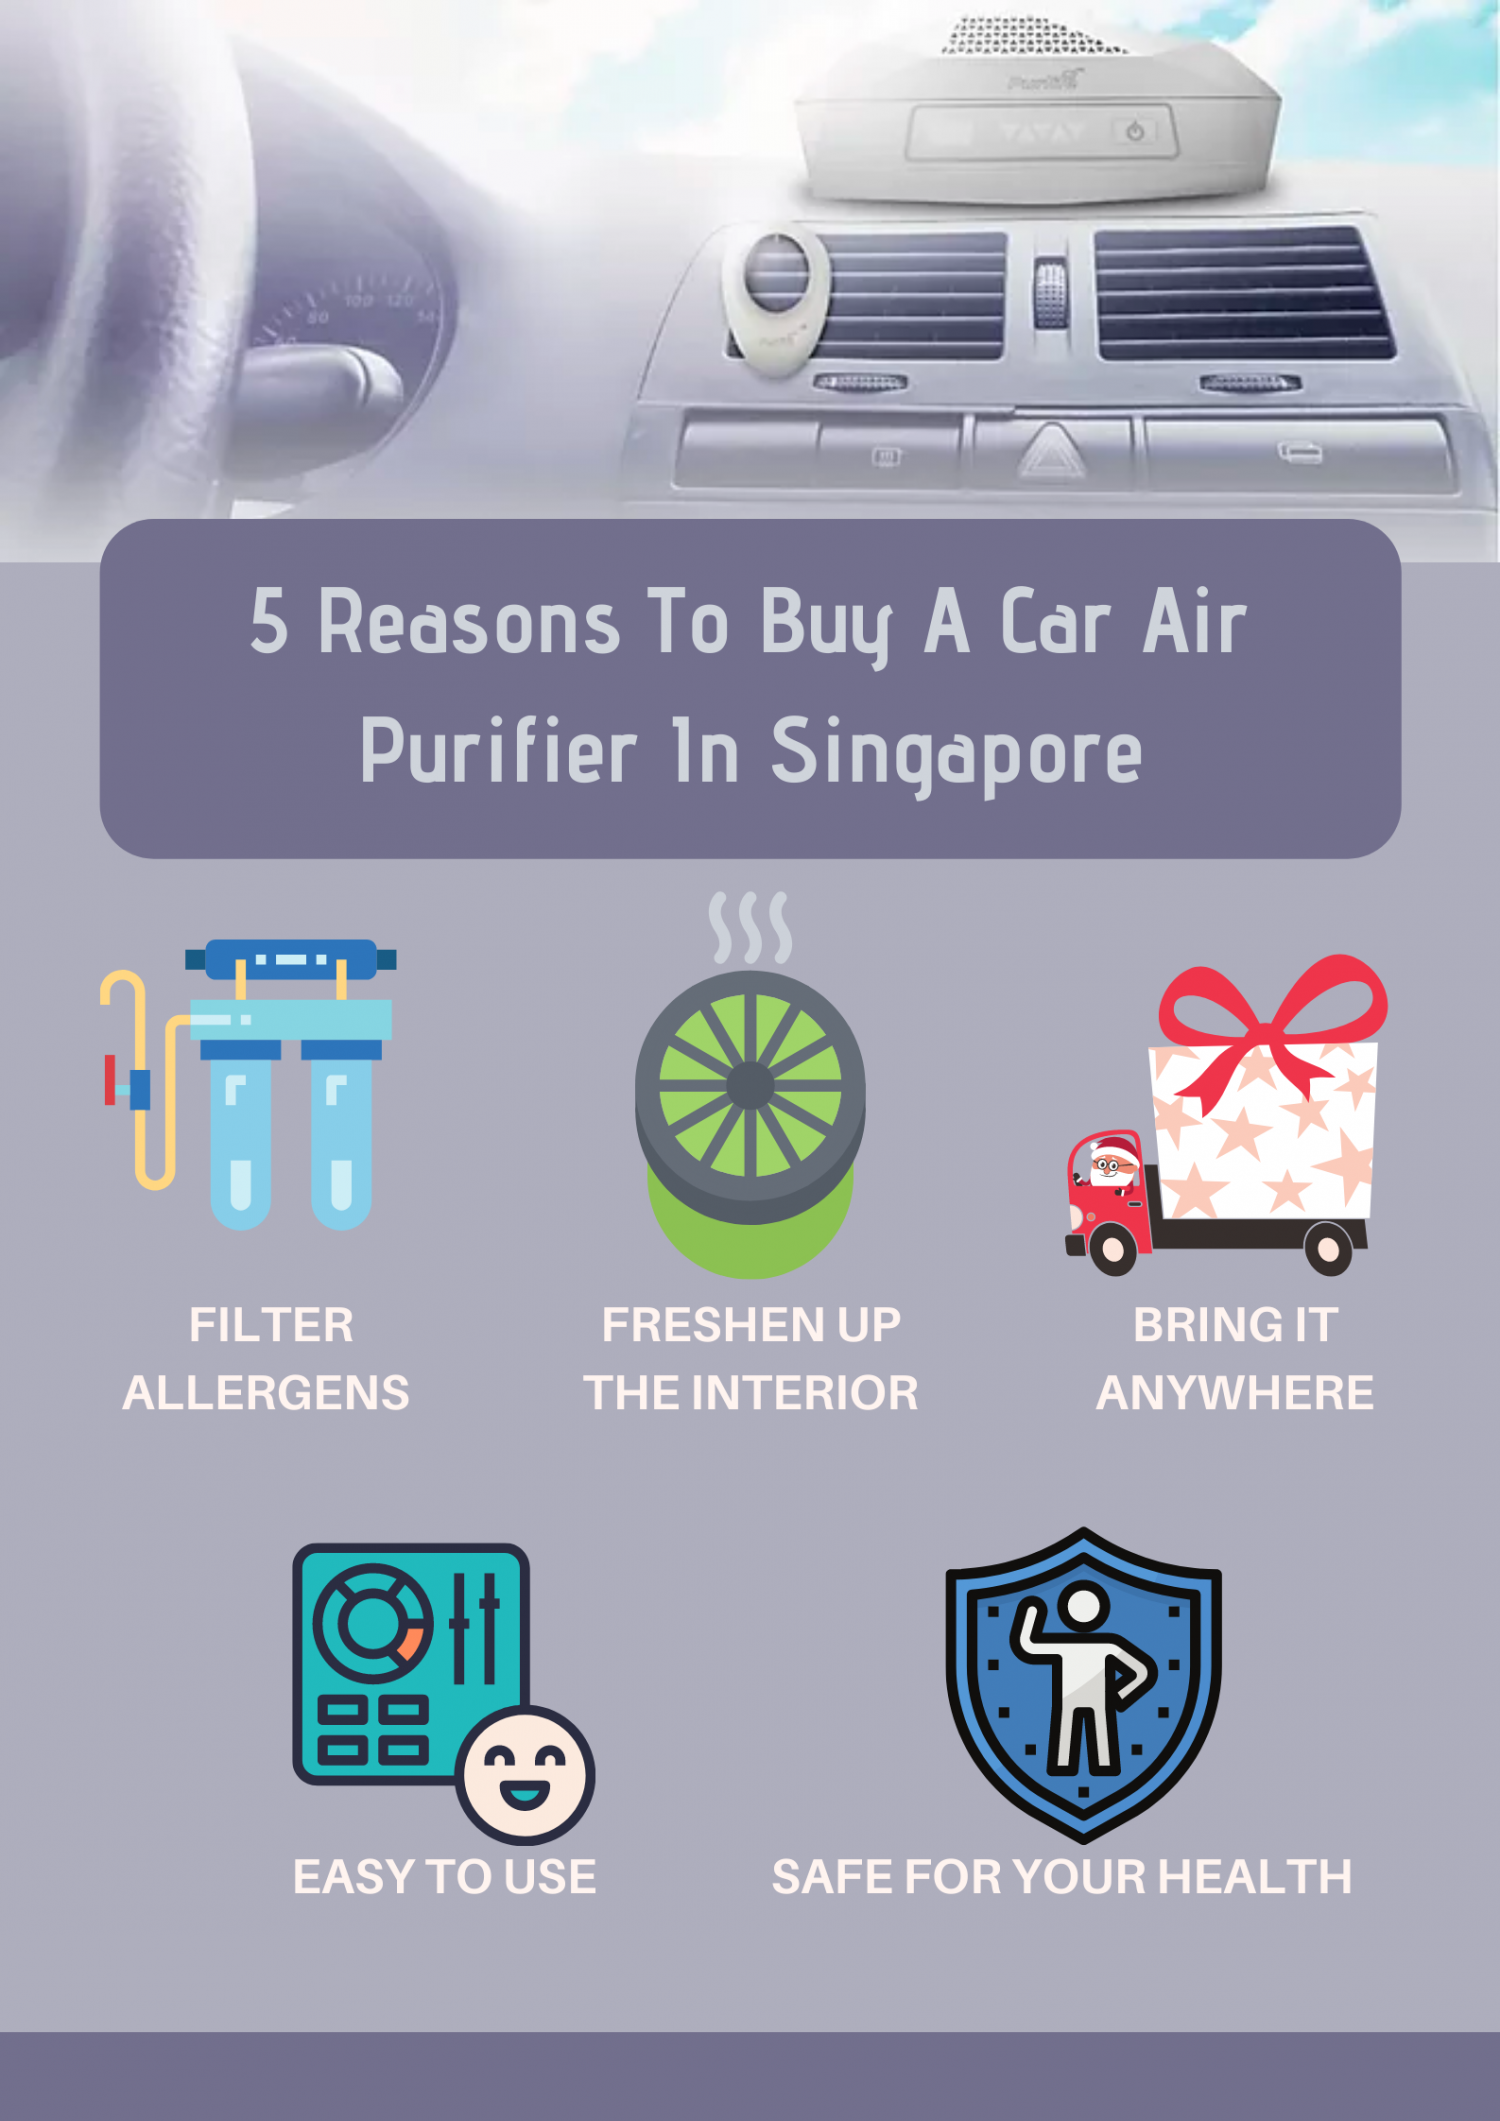 5 Reasons To Buy A Car Air Purifier In Singapore Infographic